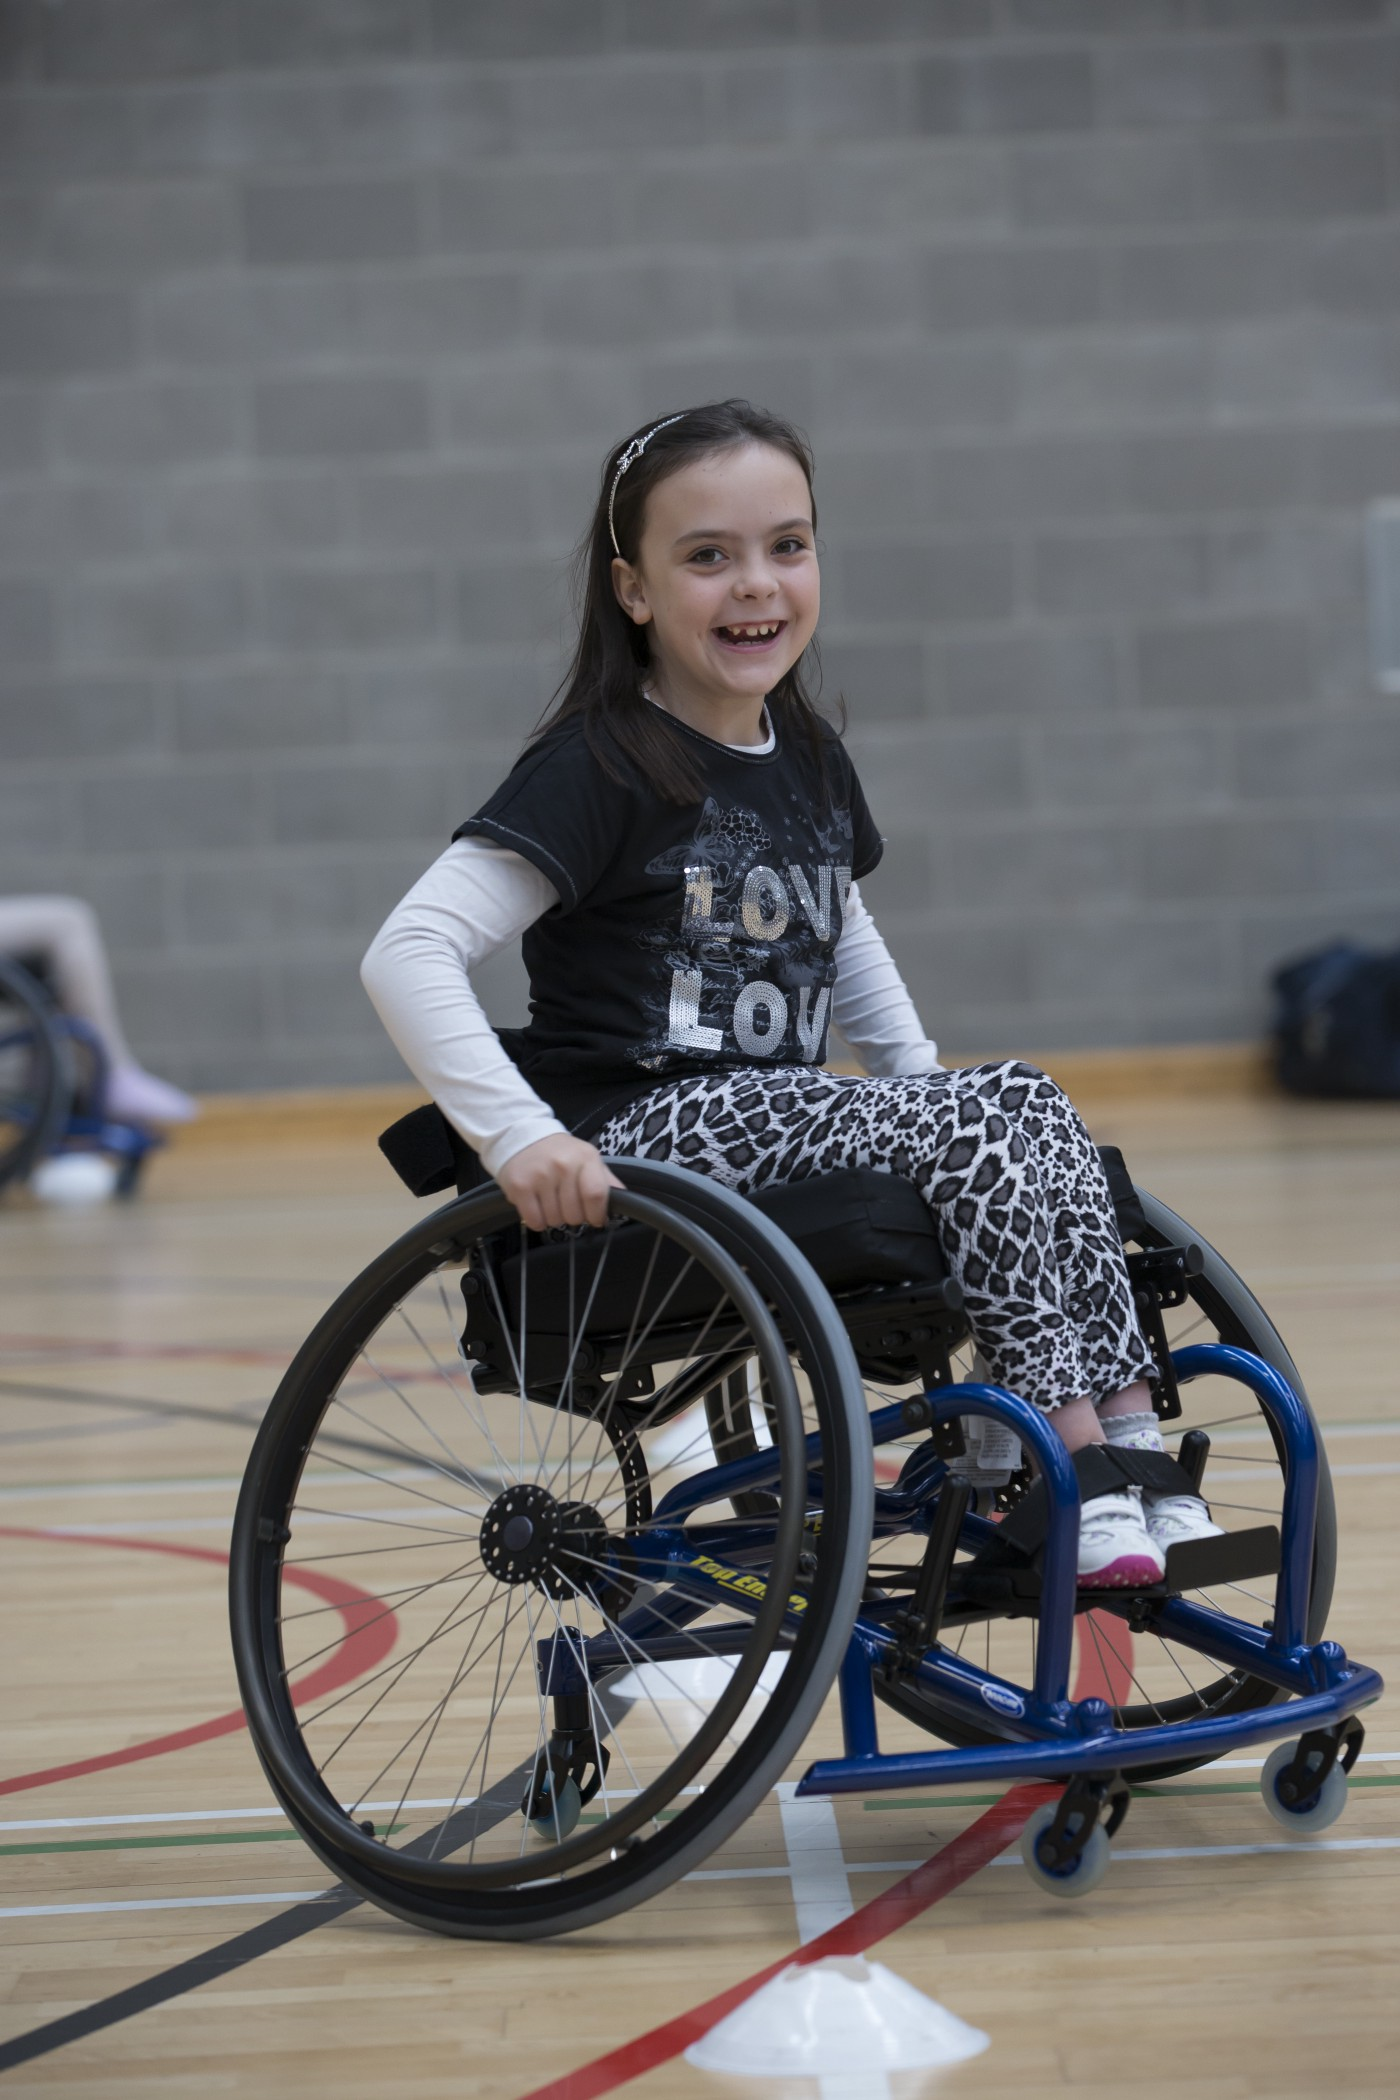 beautiful young child wearing a love tee shirt in a wheelchair